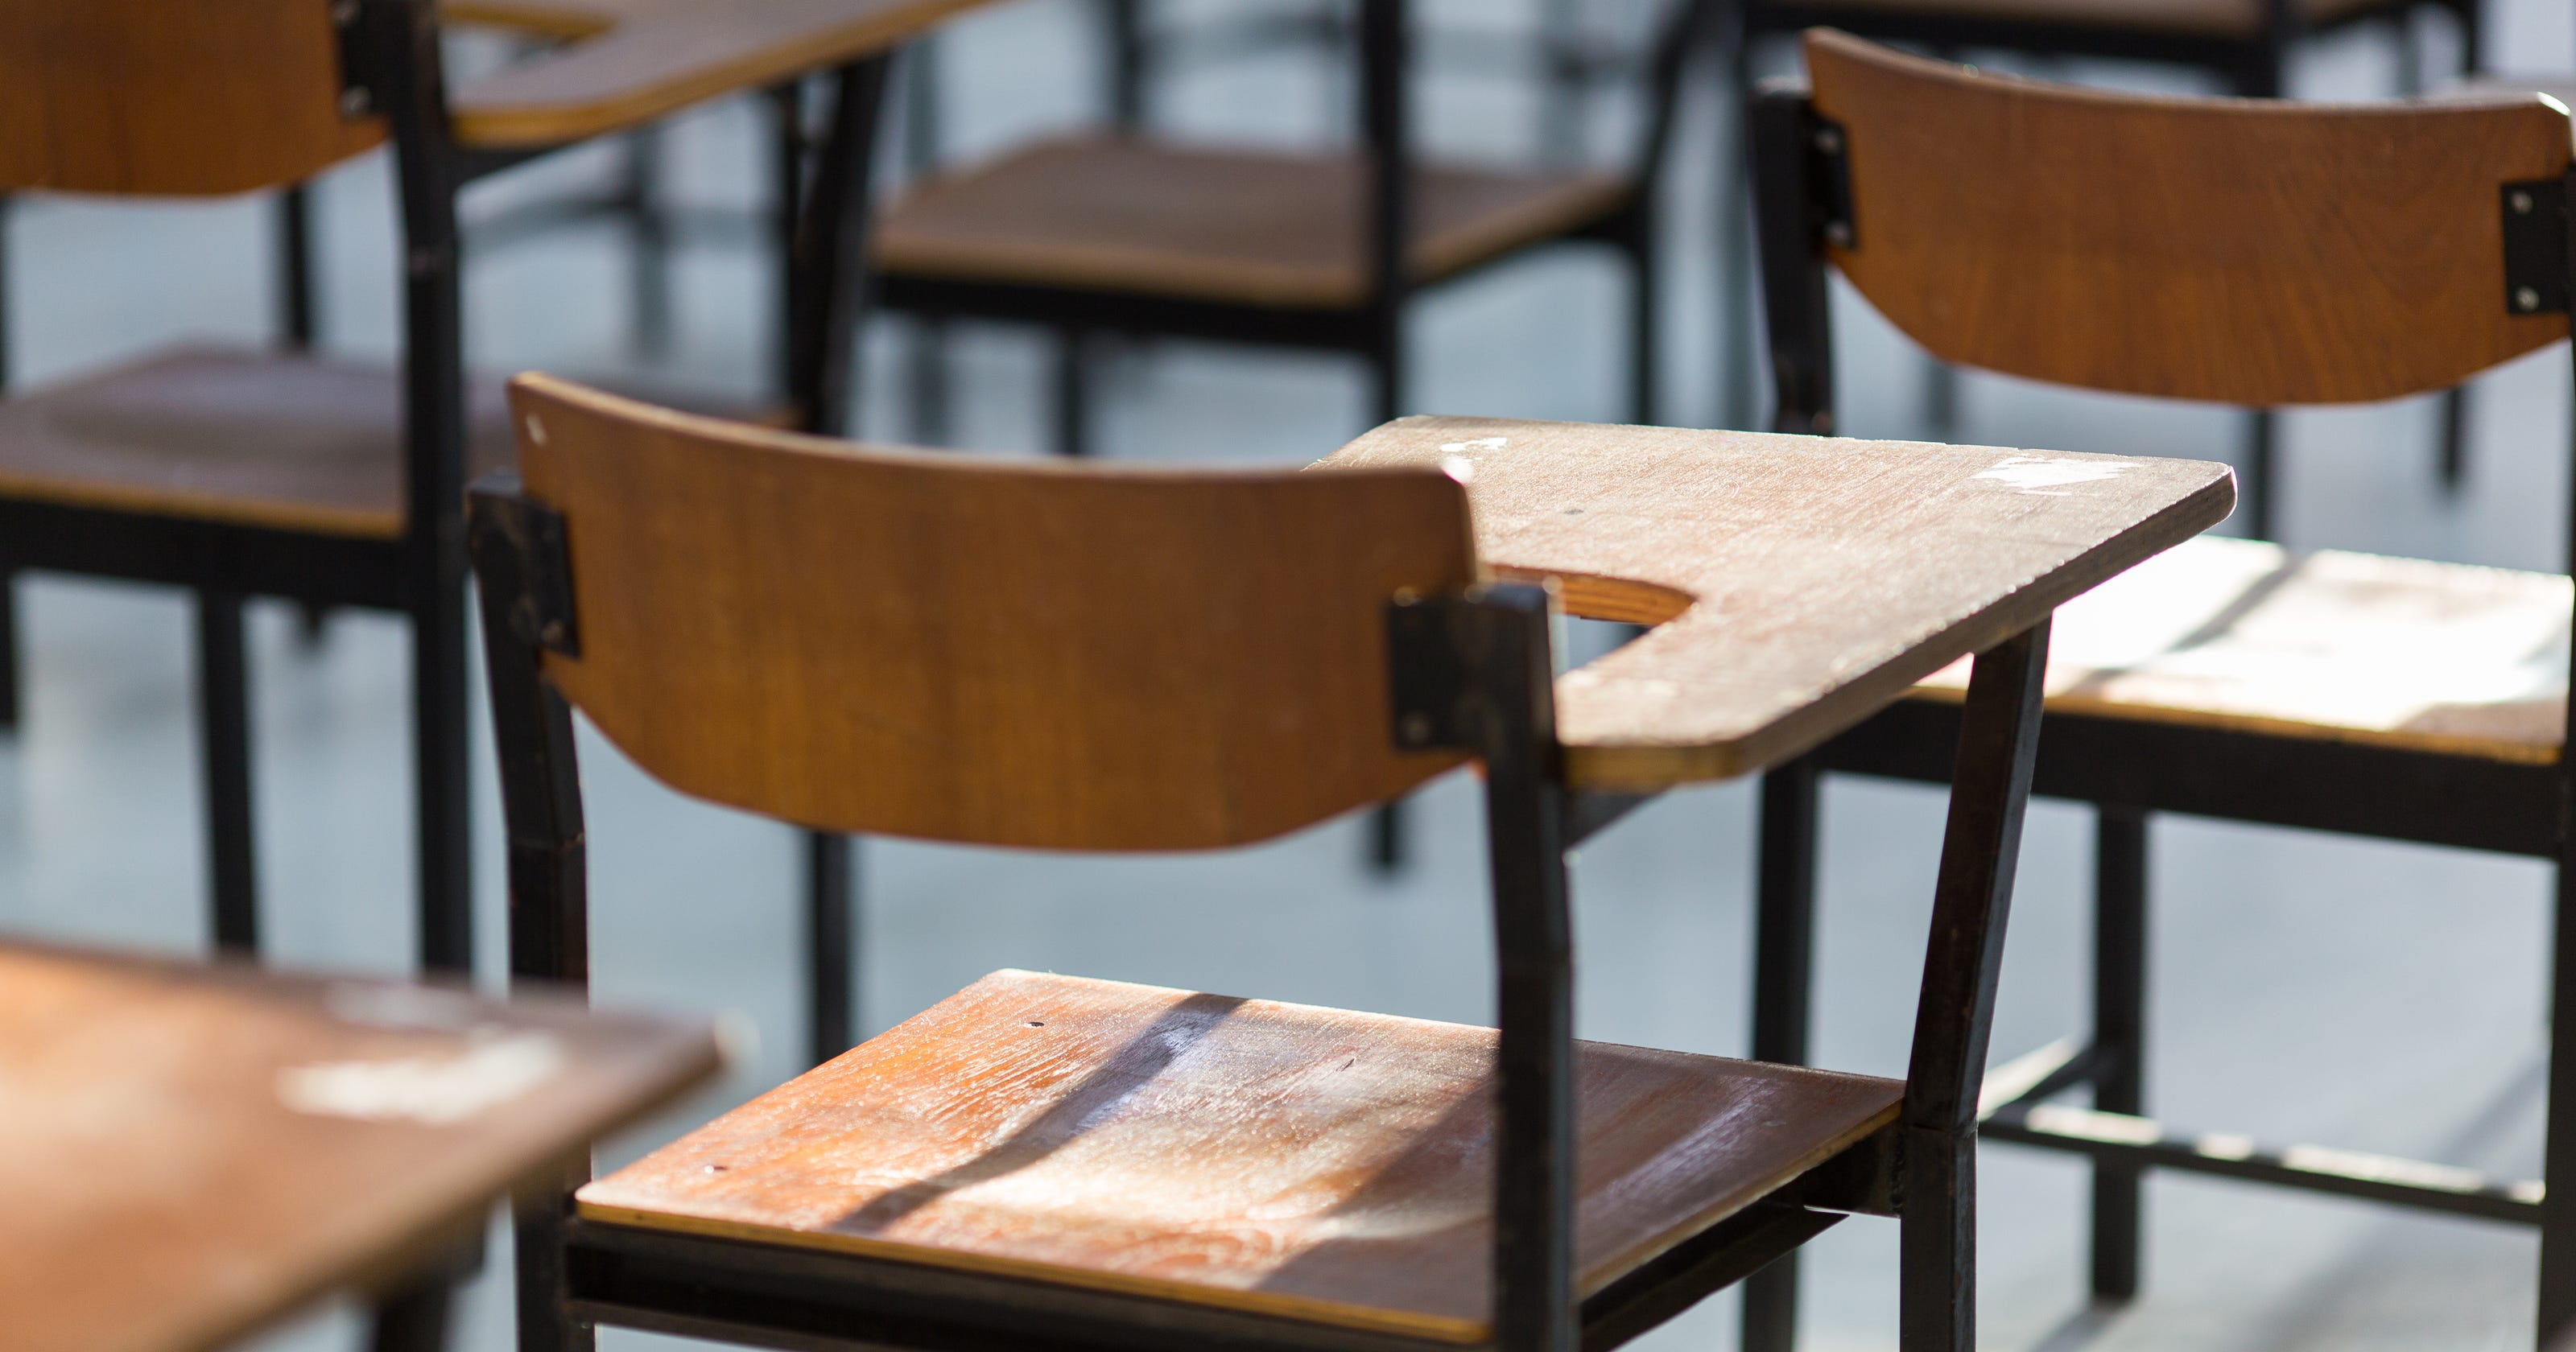 California schools chief details plan for reopening